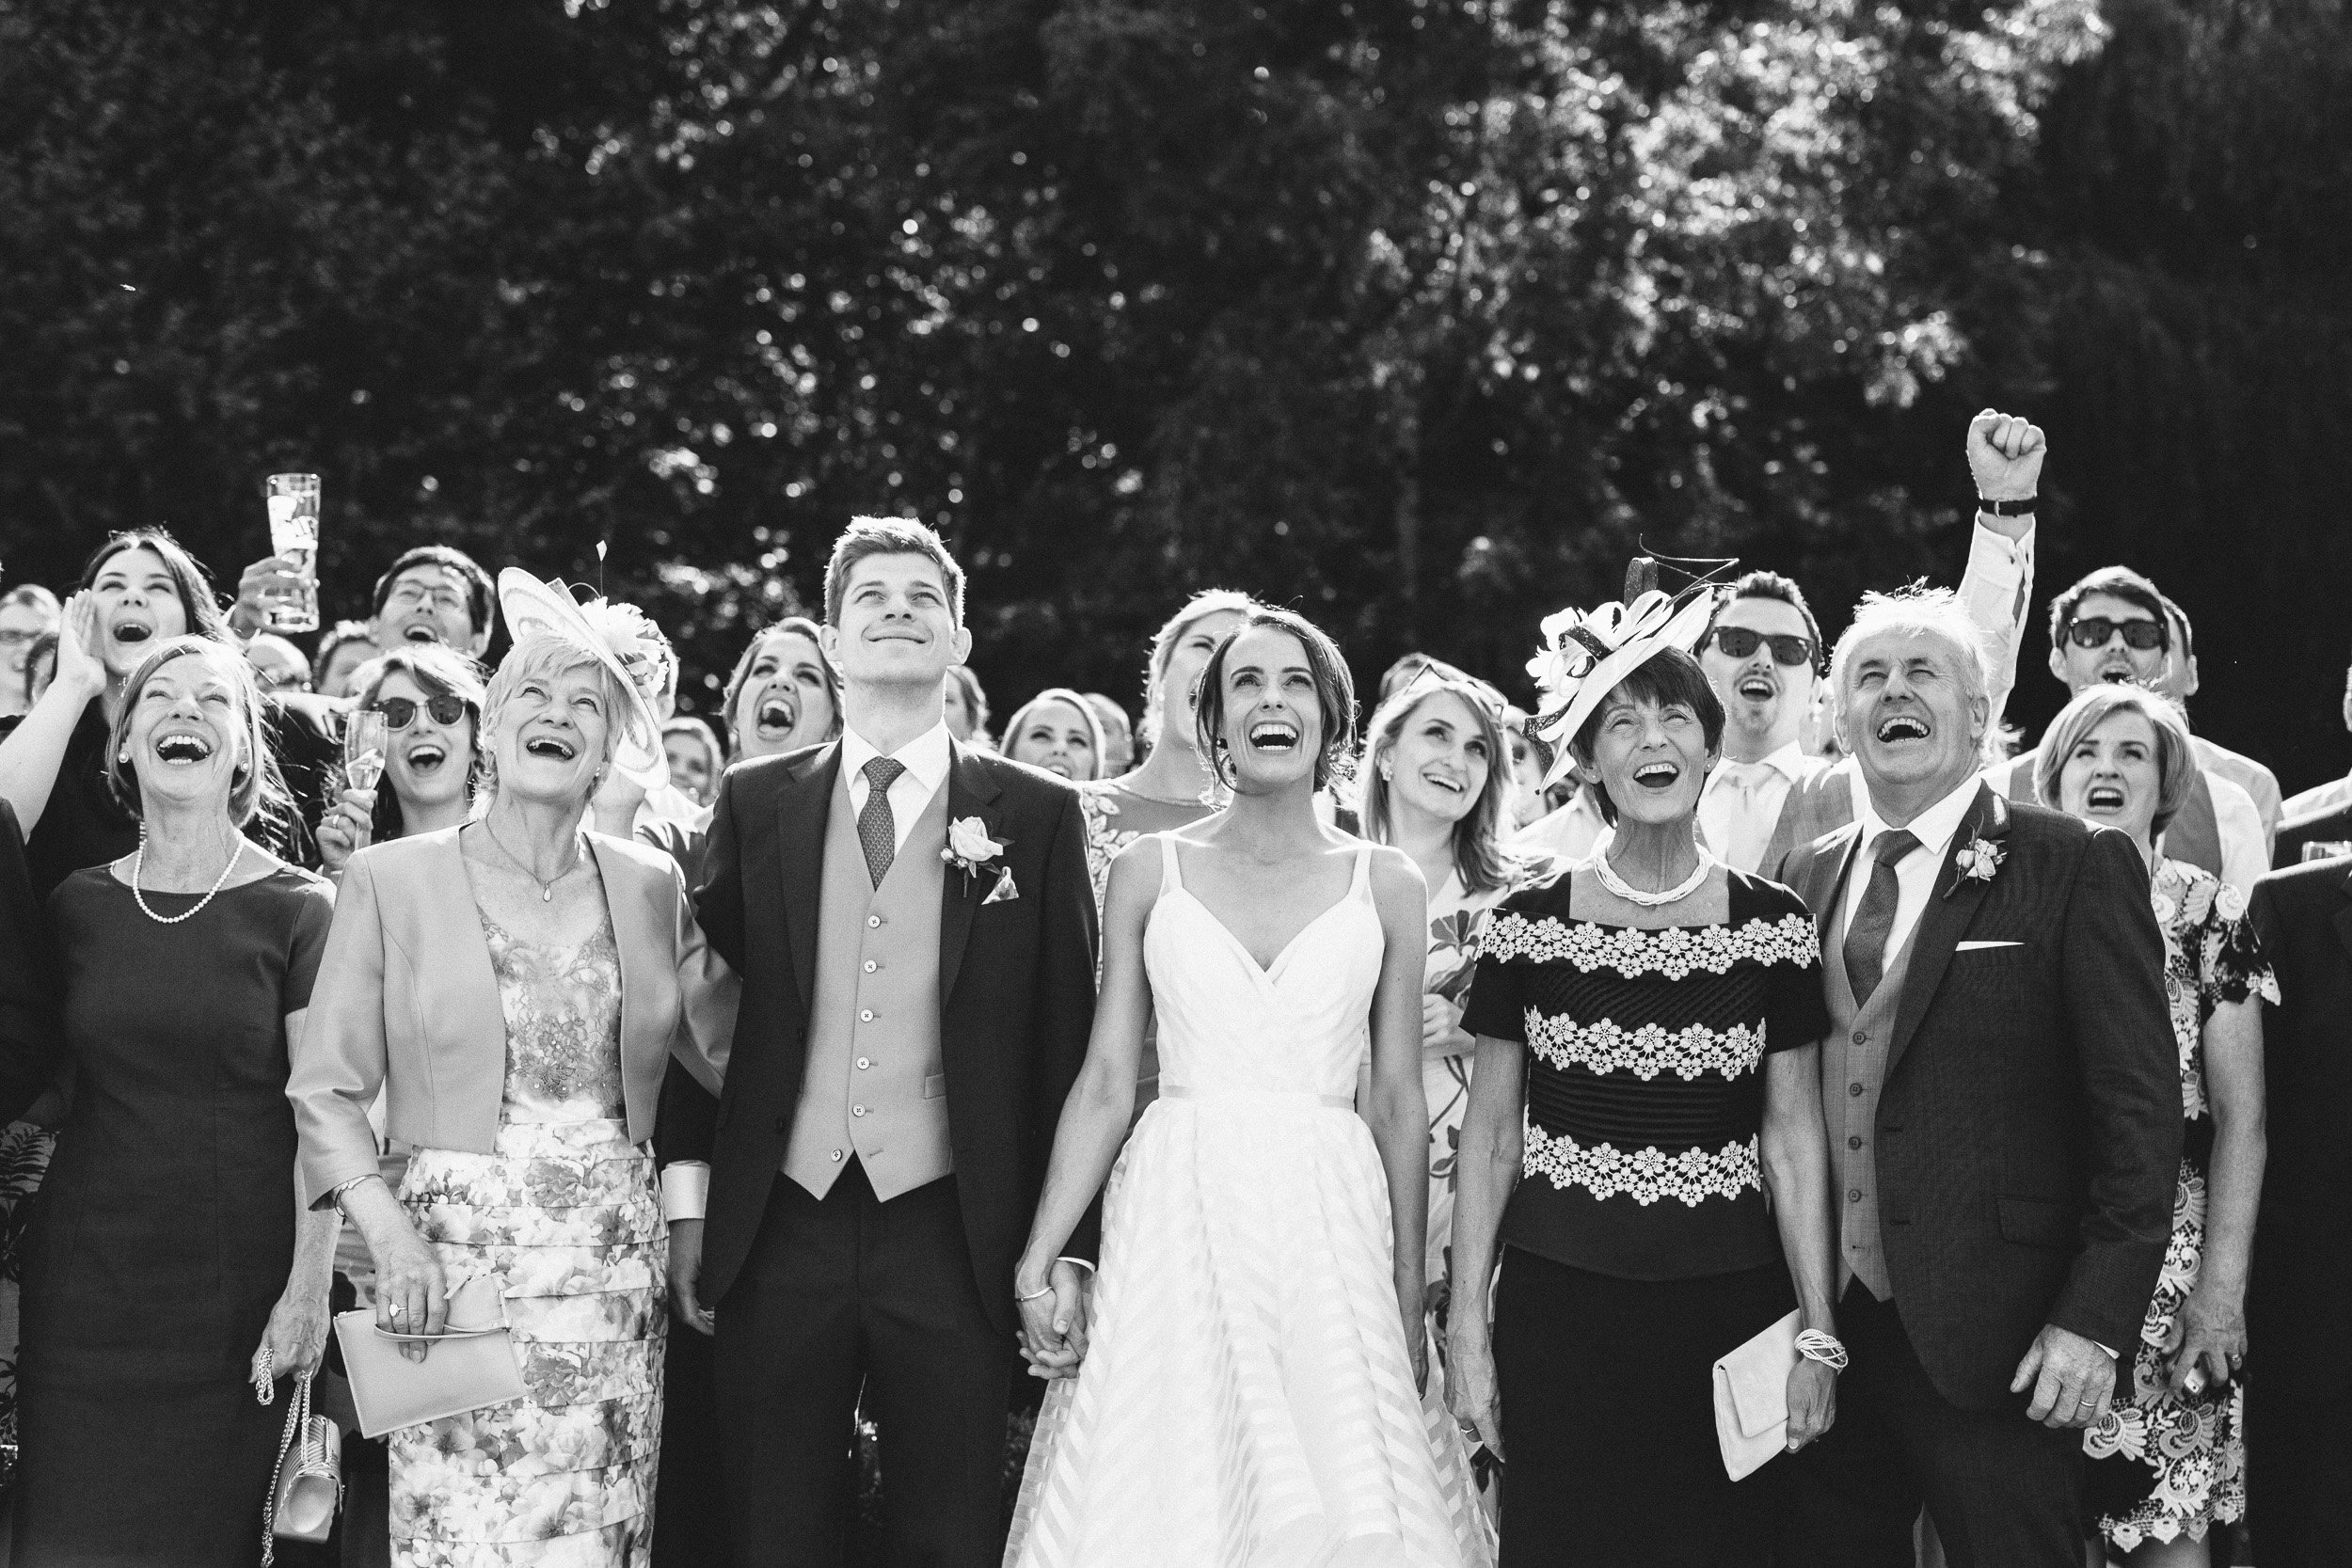 Irish_Wedding_Photographer-76.jpg